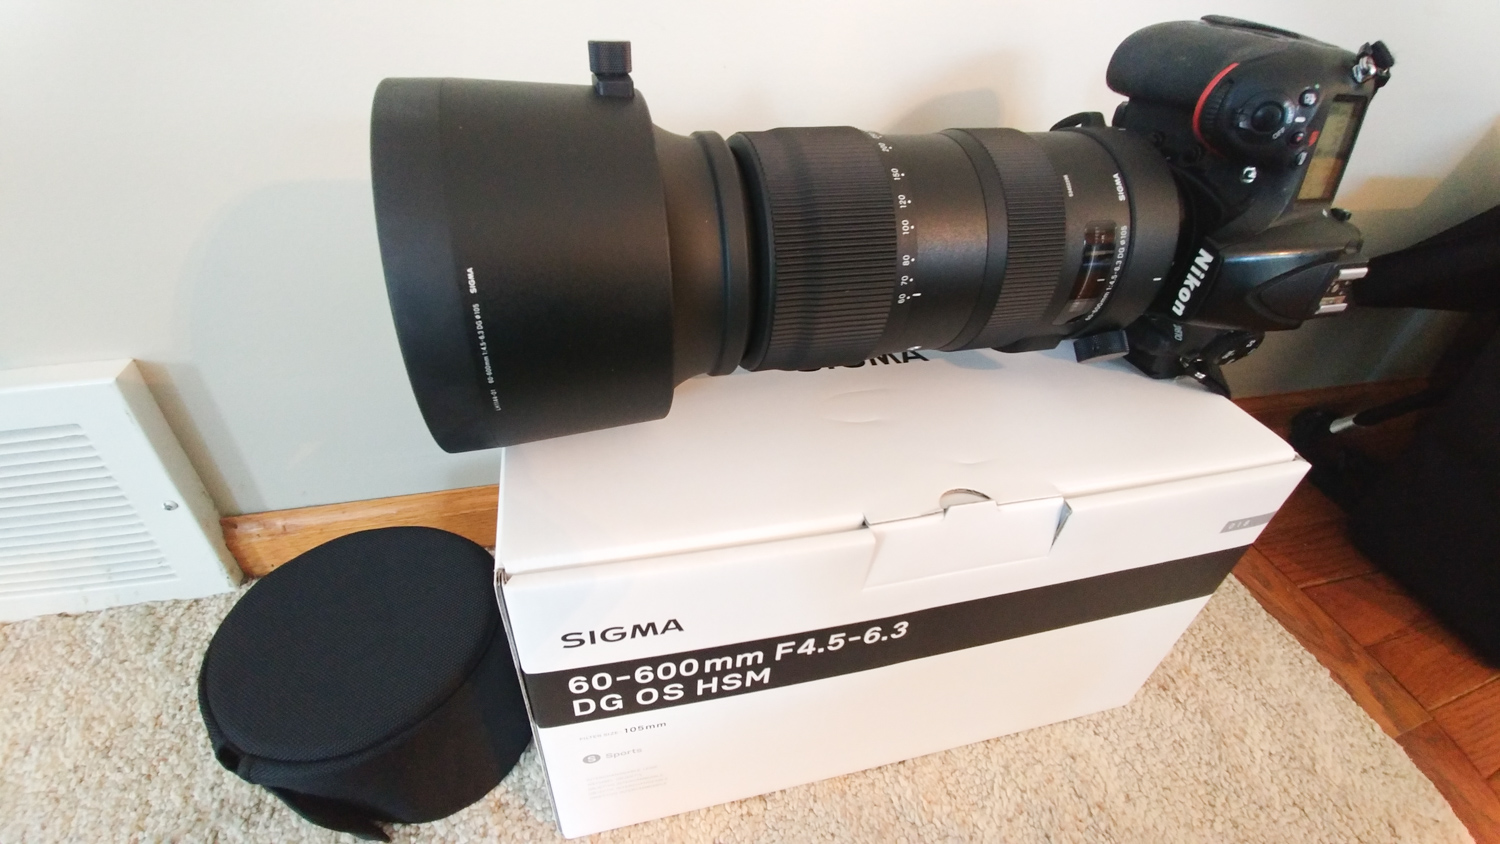 https://i2.wp.com/digital-photography-school.com/wp-content/uploads/2019/01/Sigma-600mm-Specs-and-Appearance-2.jpg?resize=1500%2C844&ssl=1